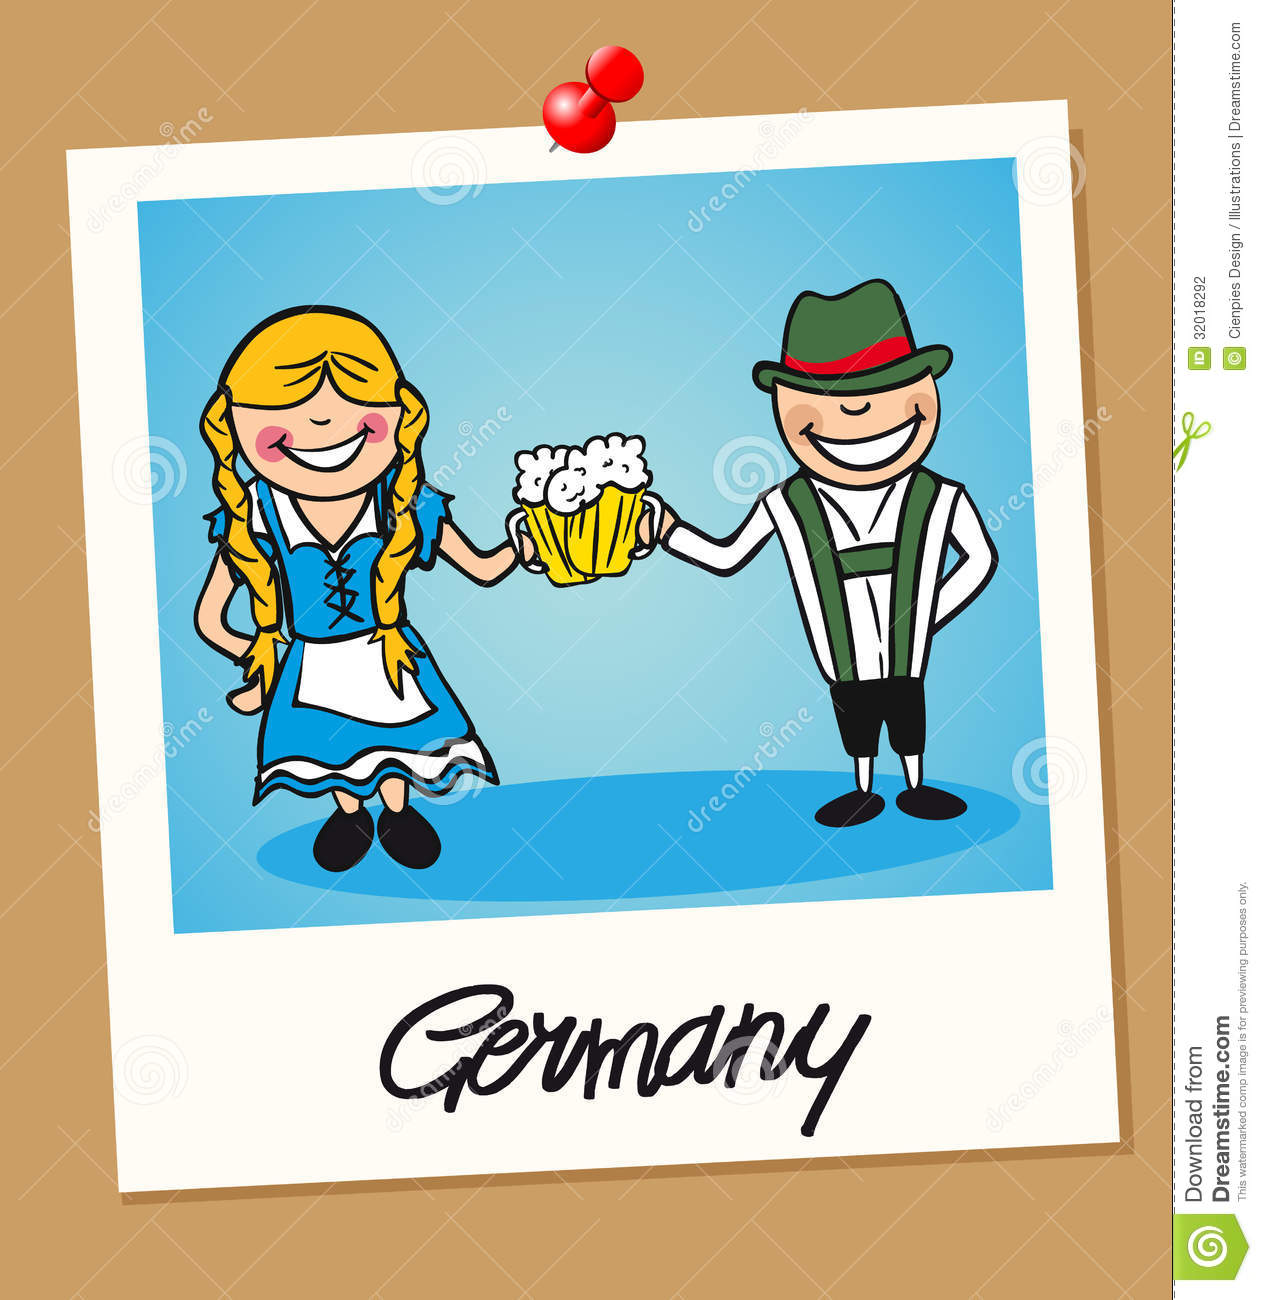 I Want To Visit Germany In German: Germany Travel Polaroid People Stock Vector